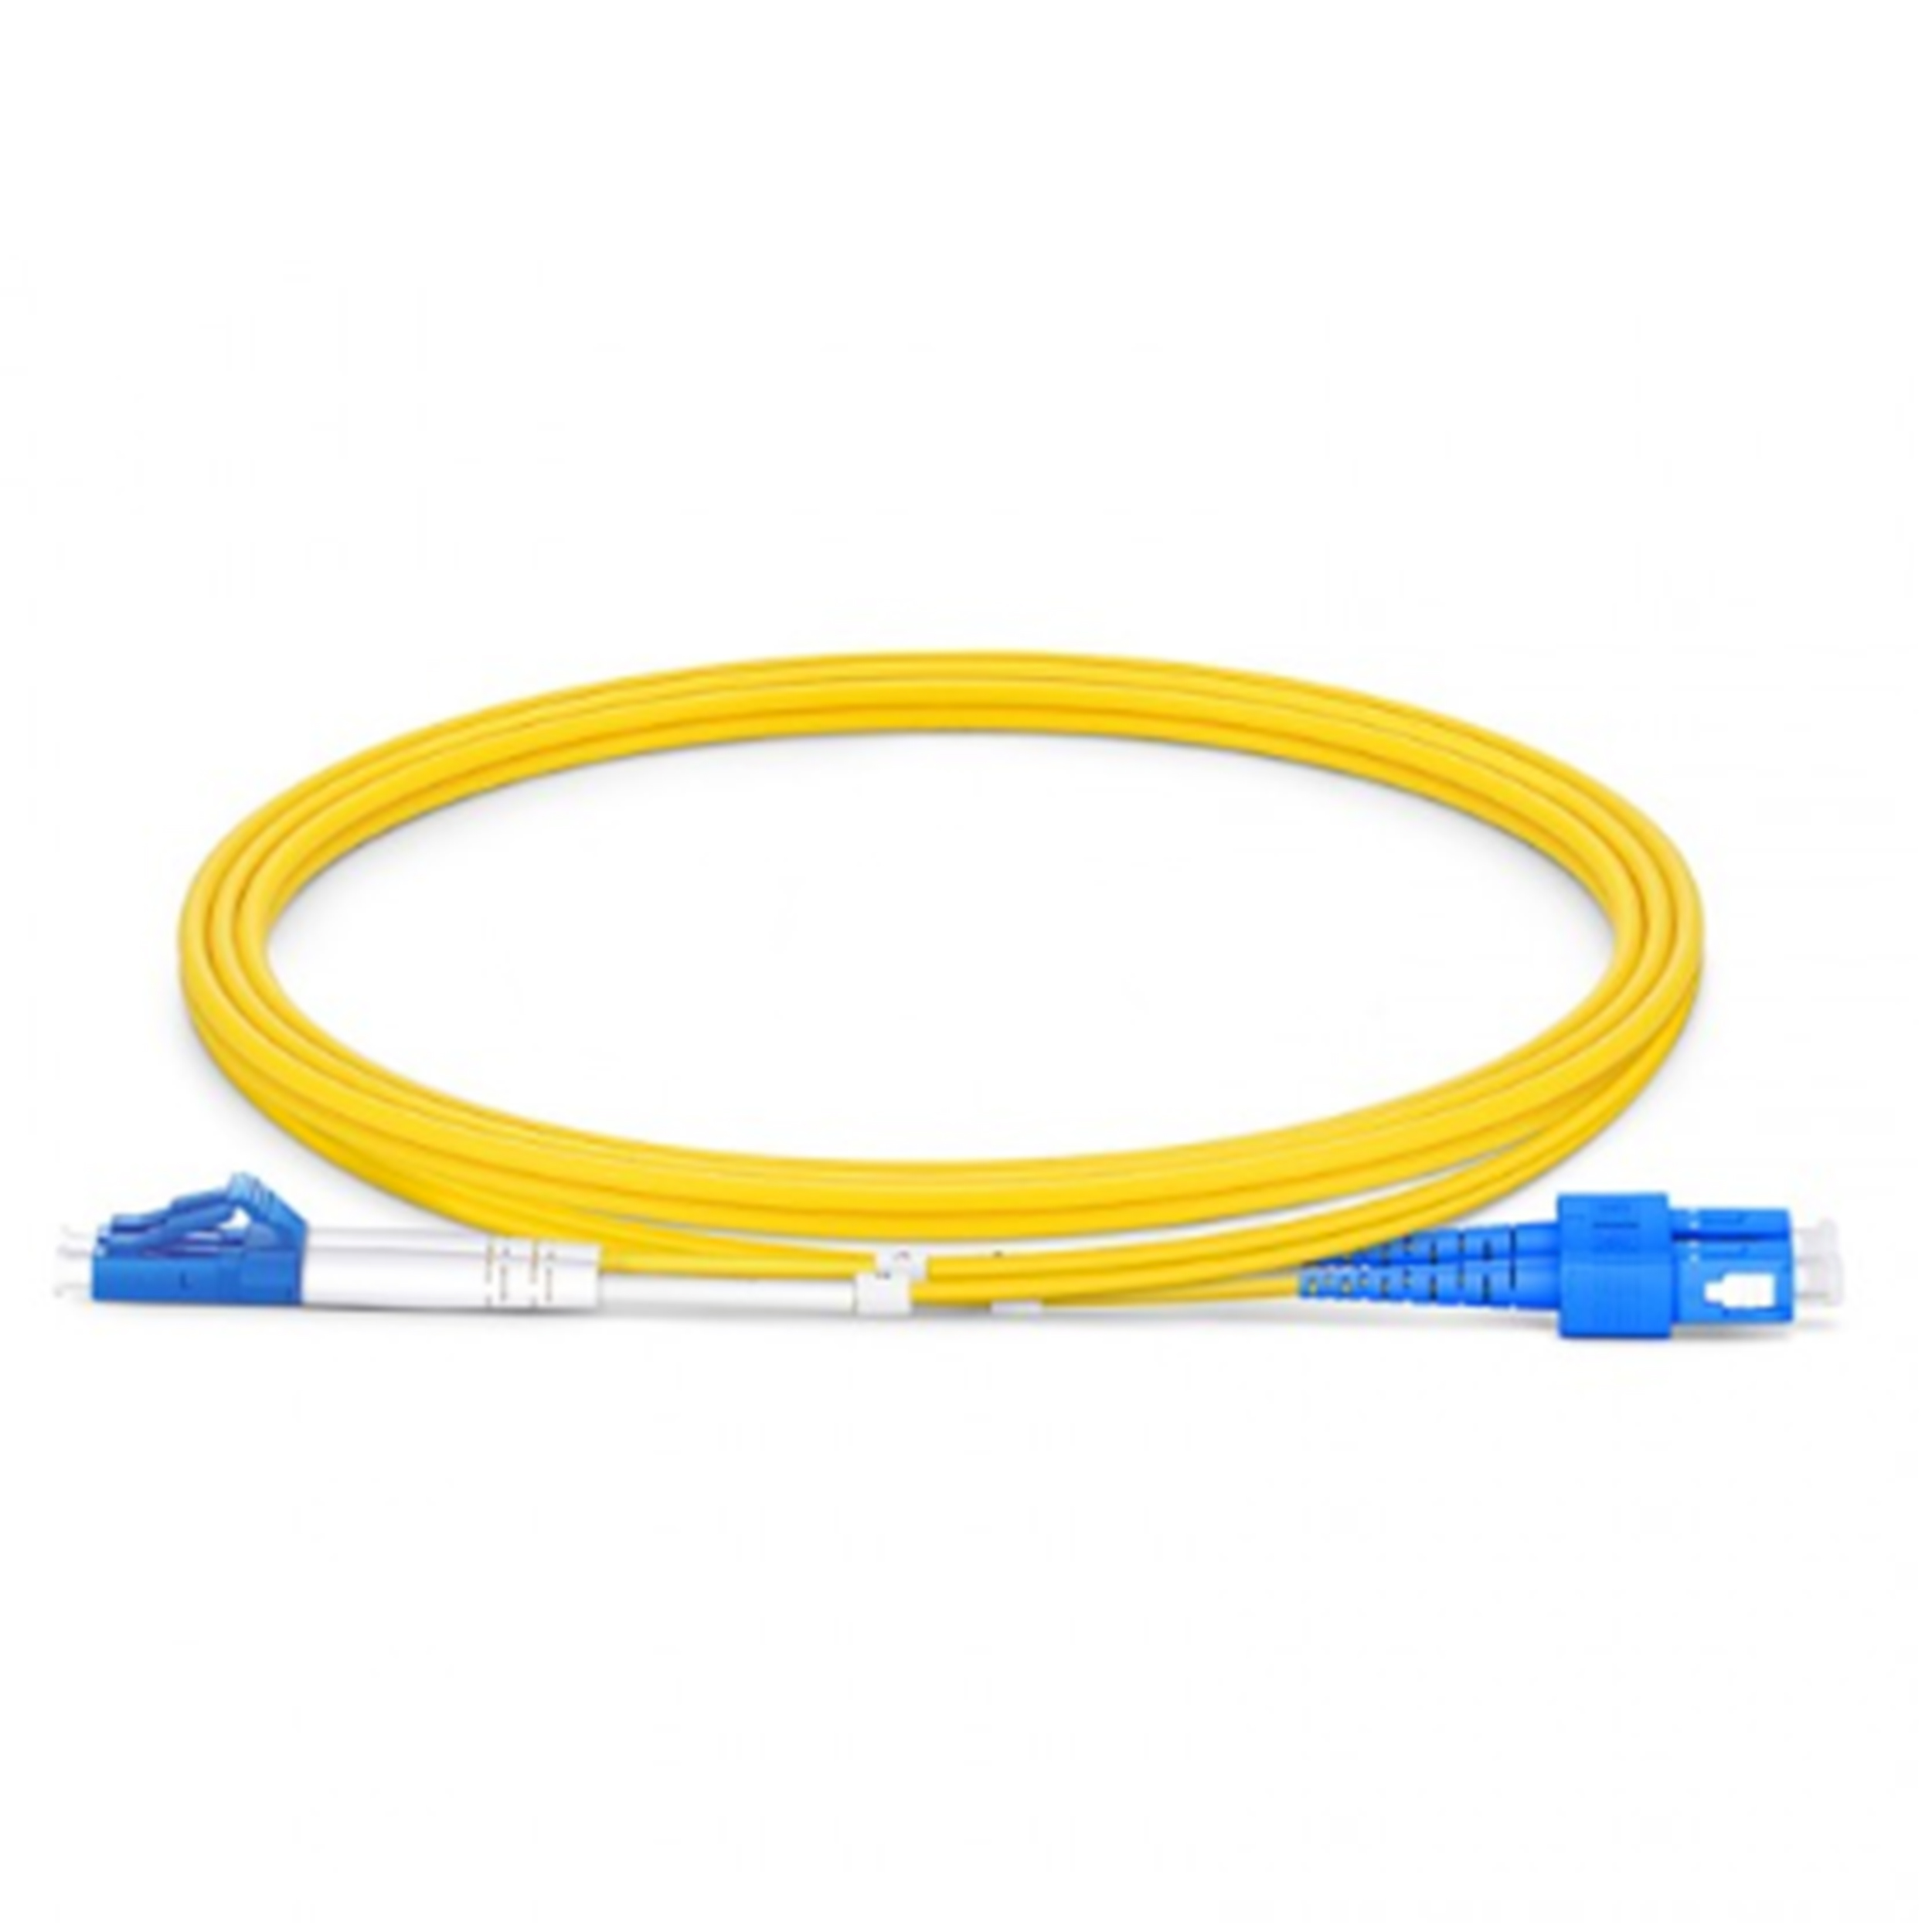 OS2 LC-SC Duplex UPC Fiber Optic Cable (16ft) 5M Yellow